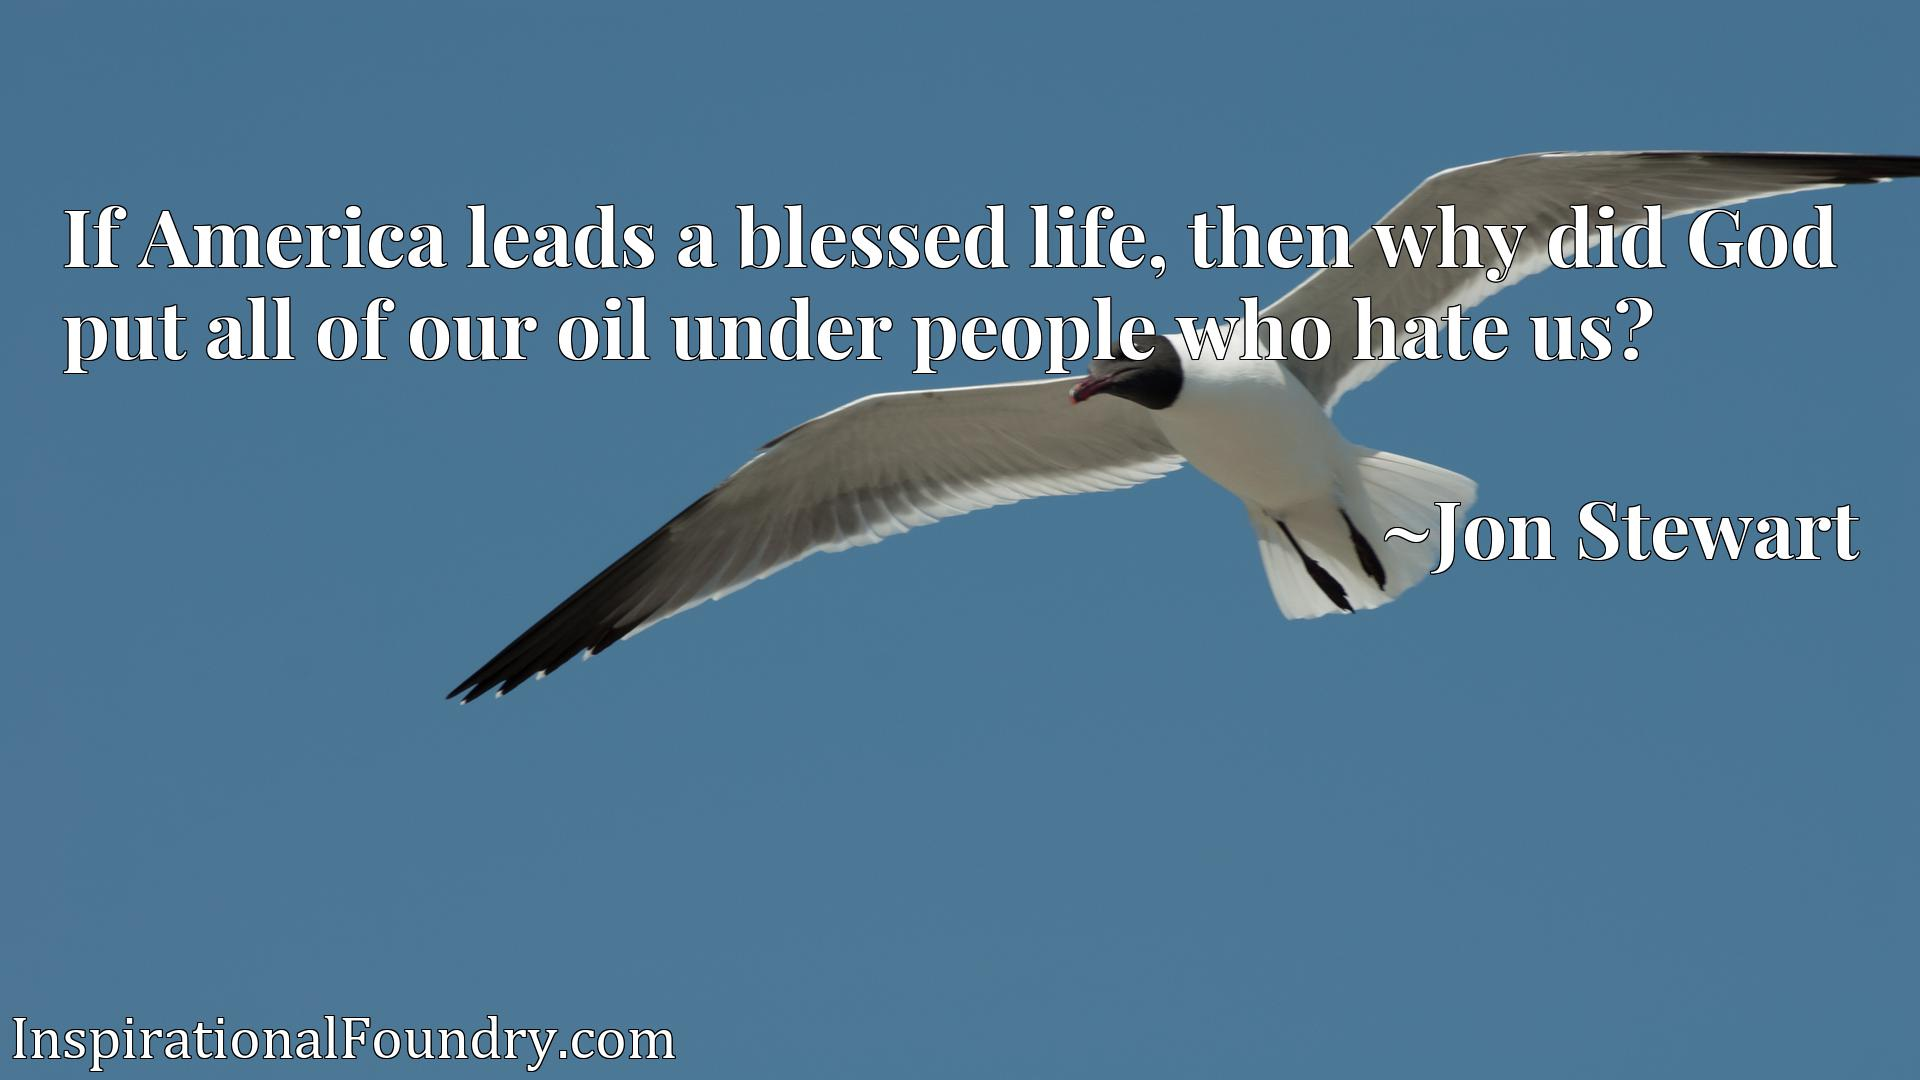 If America leads a blessed life, then why did God put all of our oil under people who hate us?